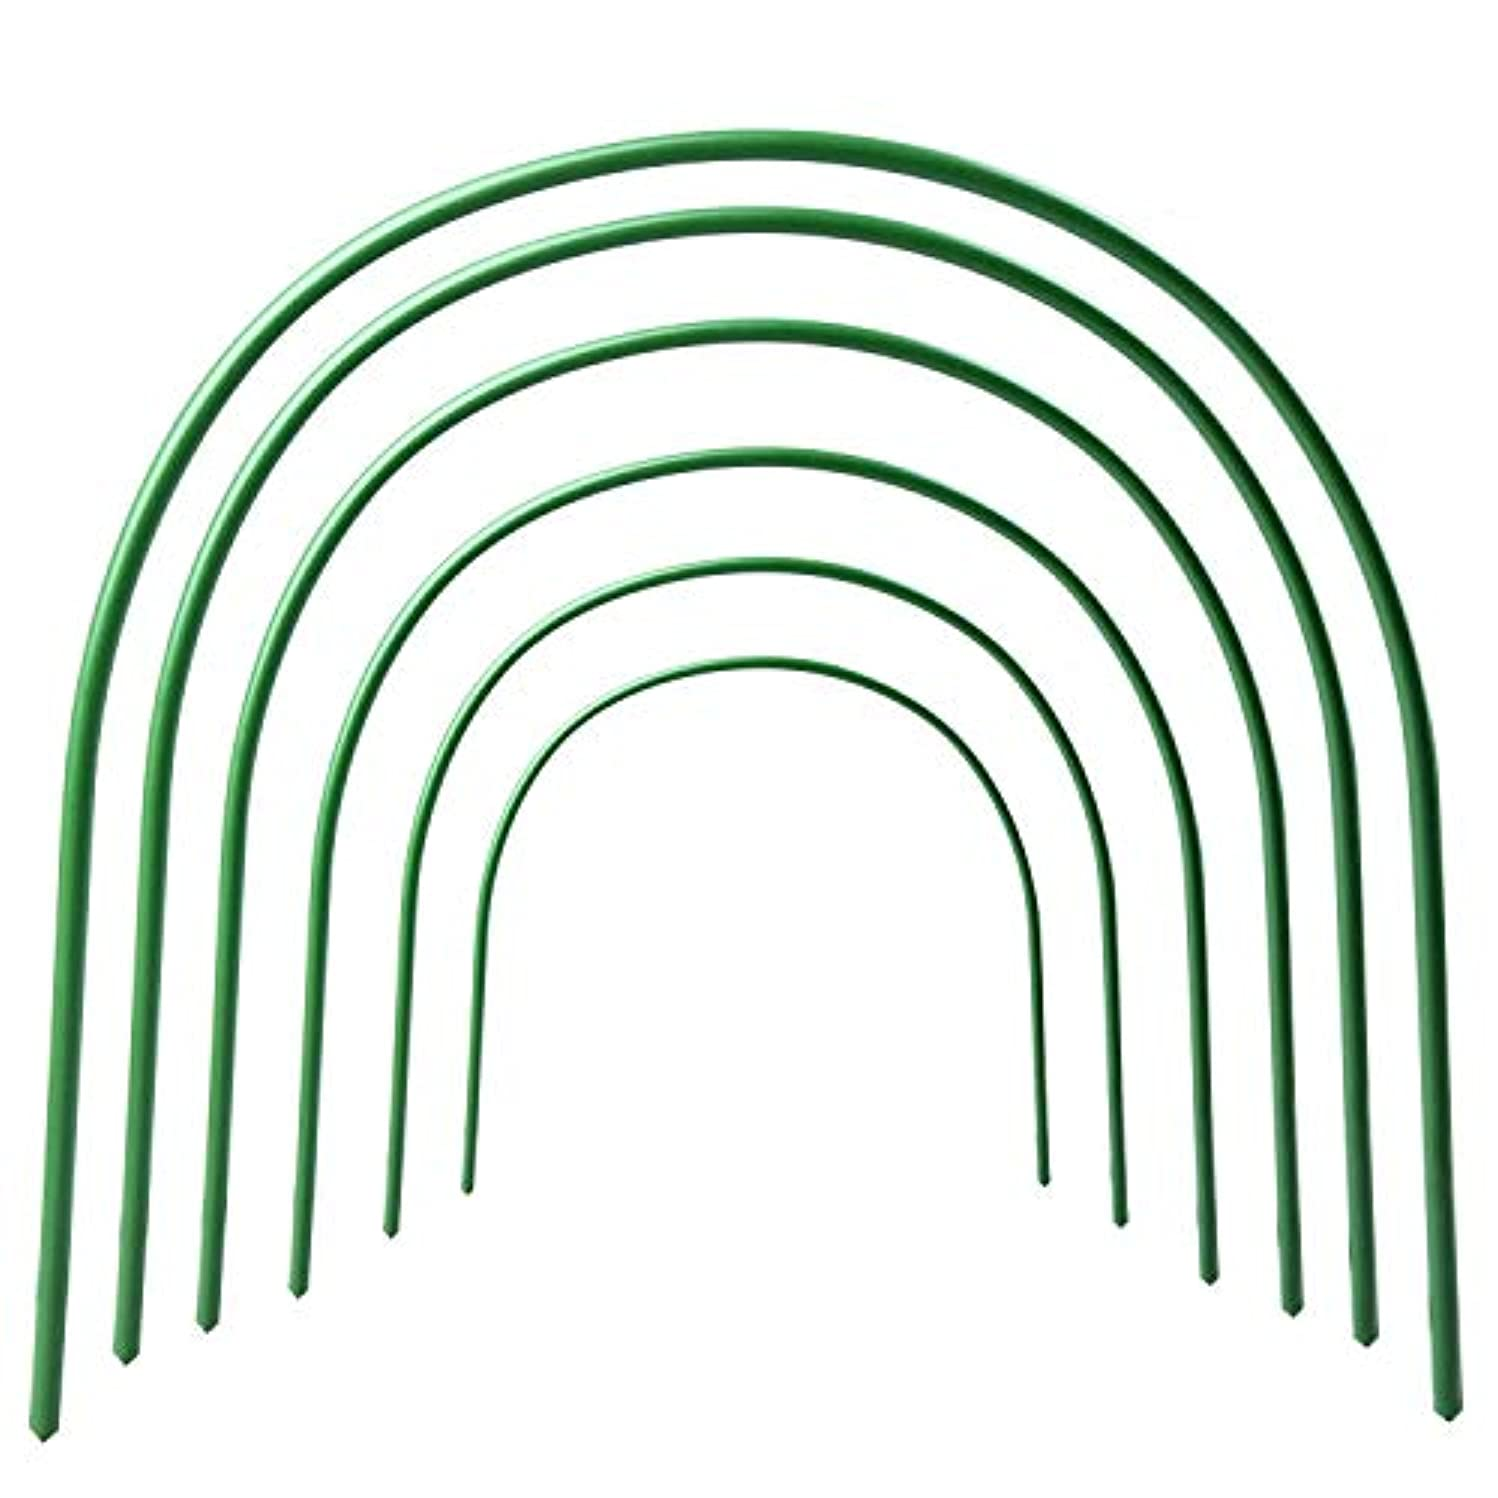 B&P Portable Garden Hoops Hoop Greenhouse Plant Hoops, Rust-Free Grow Tunnel 4ft Long Steel with Plastic Coated Hoops,Greenhouse Support Hoops for Garden Hoop,6Pack (Arch Size: 18.5